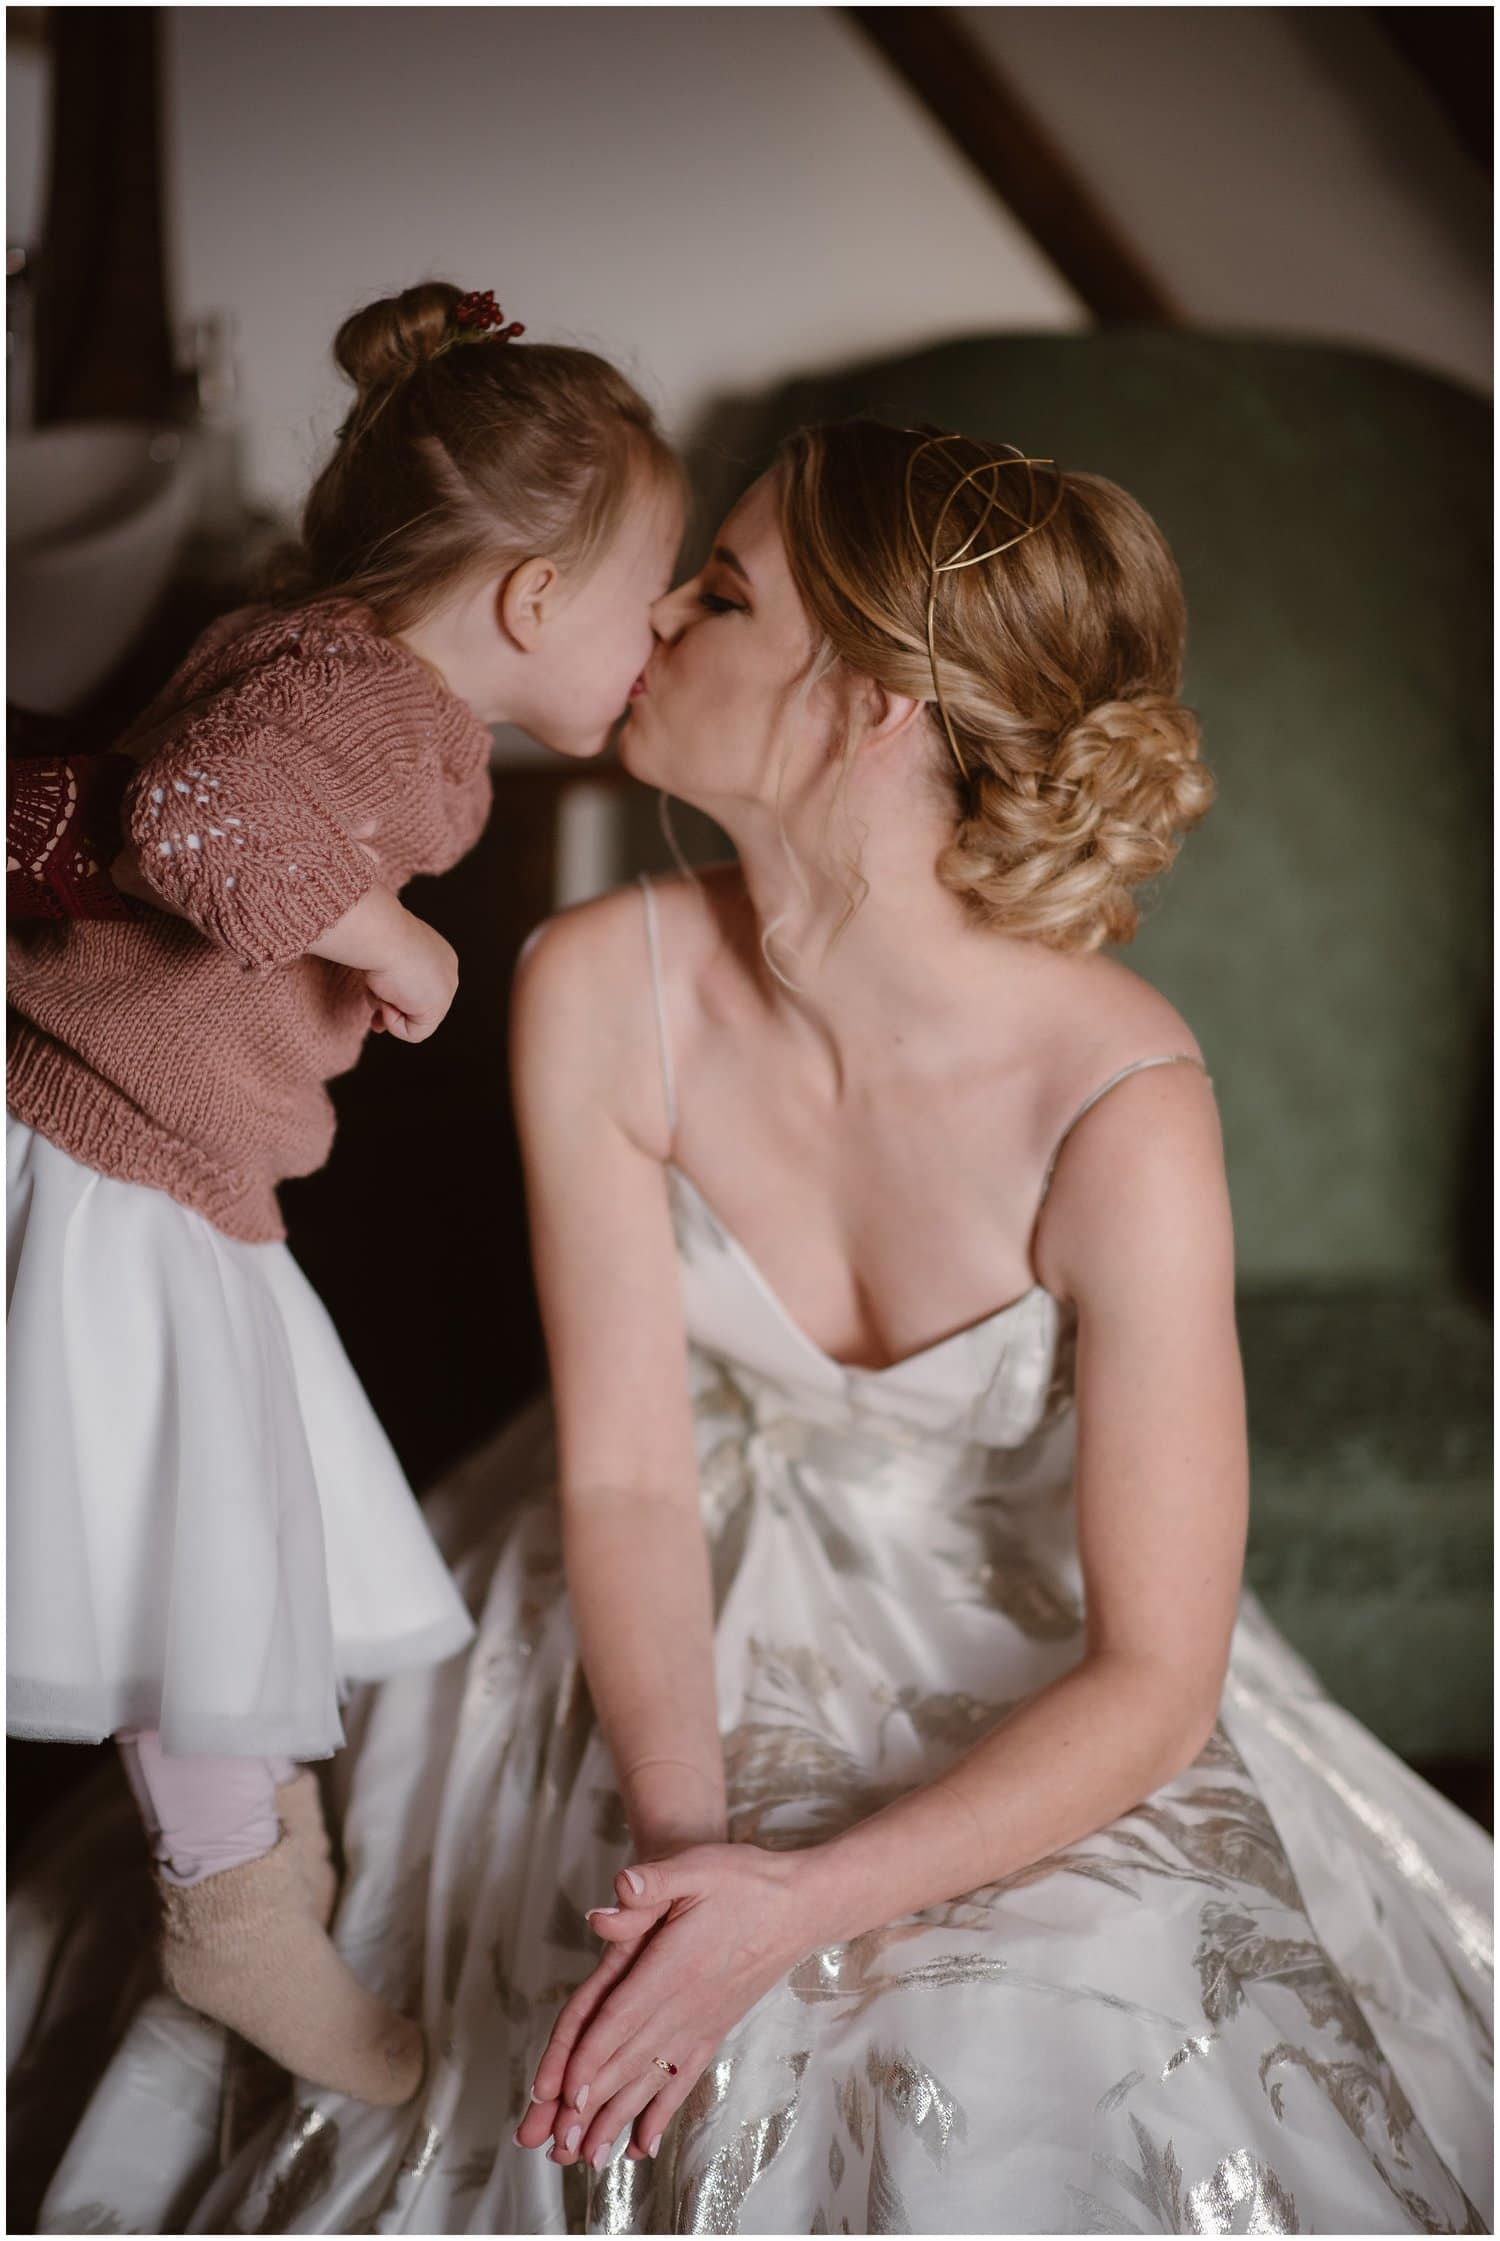 Bride kisses her little girl on her wedding day.